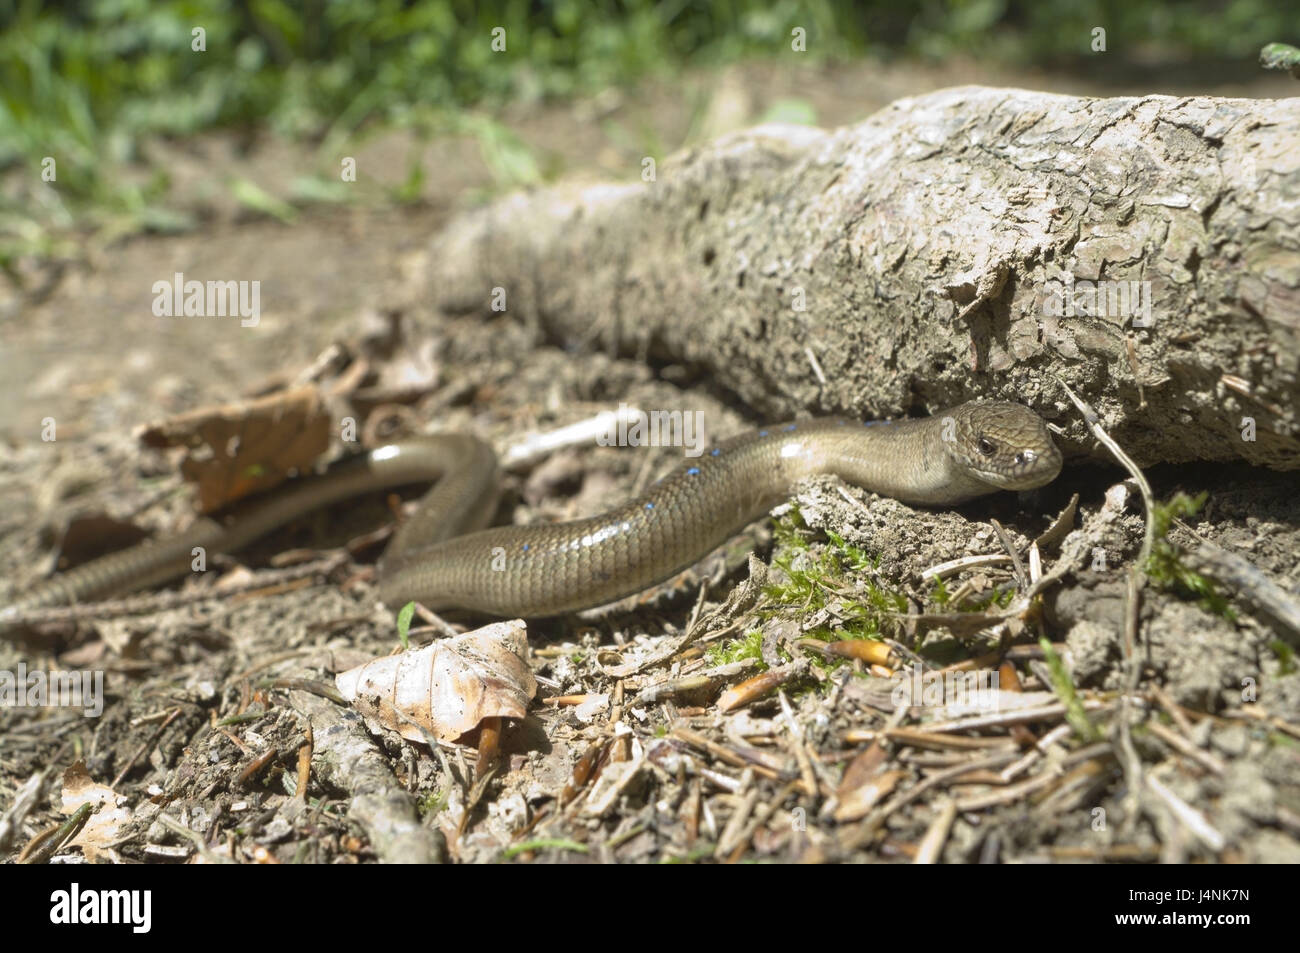 Forest floor, blindworm, Anguis fragilis, Slovakia, wild animals, animals, animal world, individually, reptiles, - Stock Image